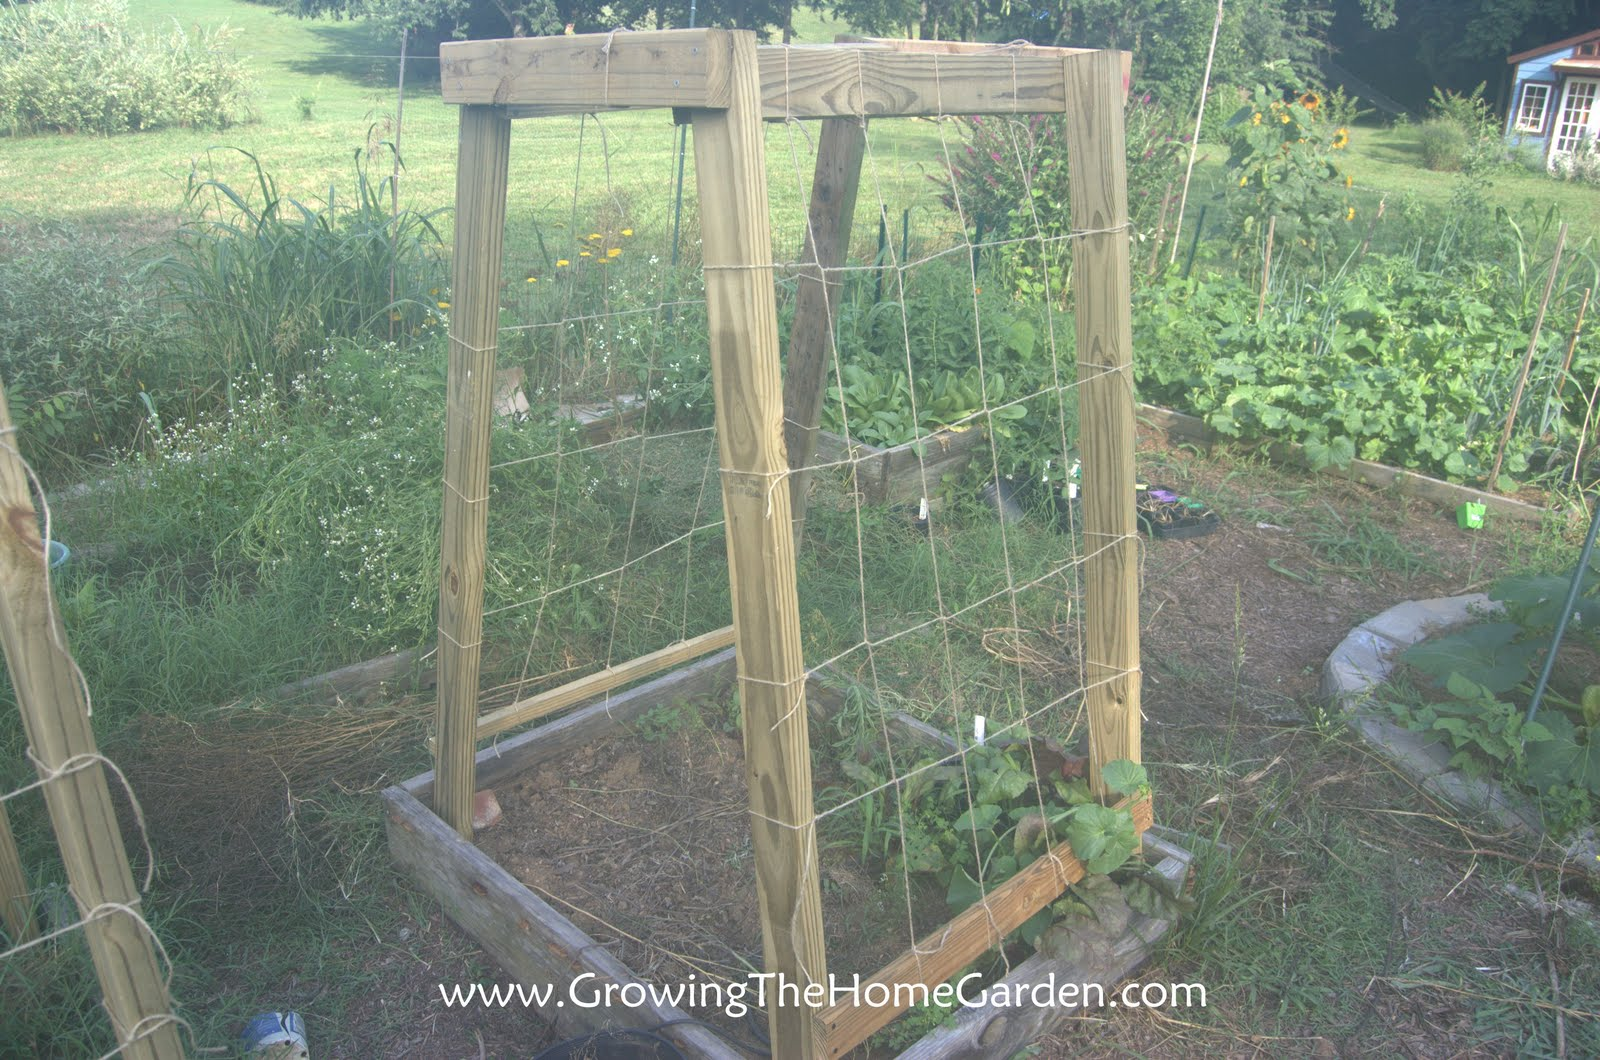 Homemade cucumber or melon trellises growing the home garden - Building trellises property ...